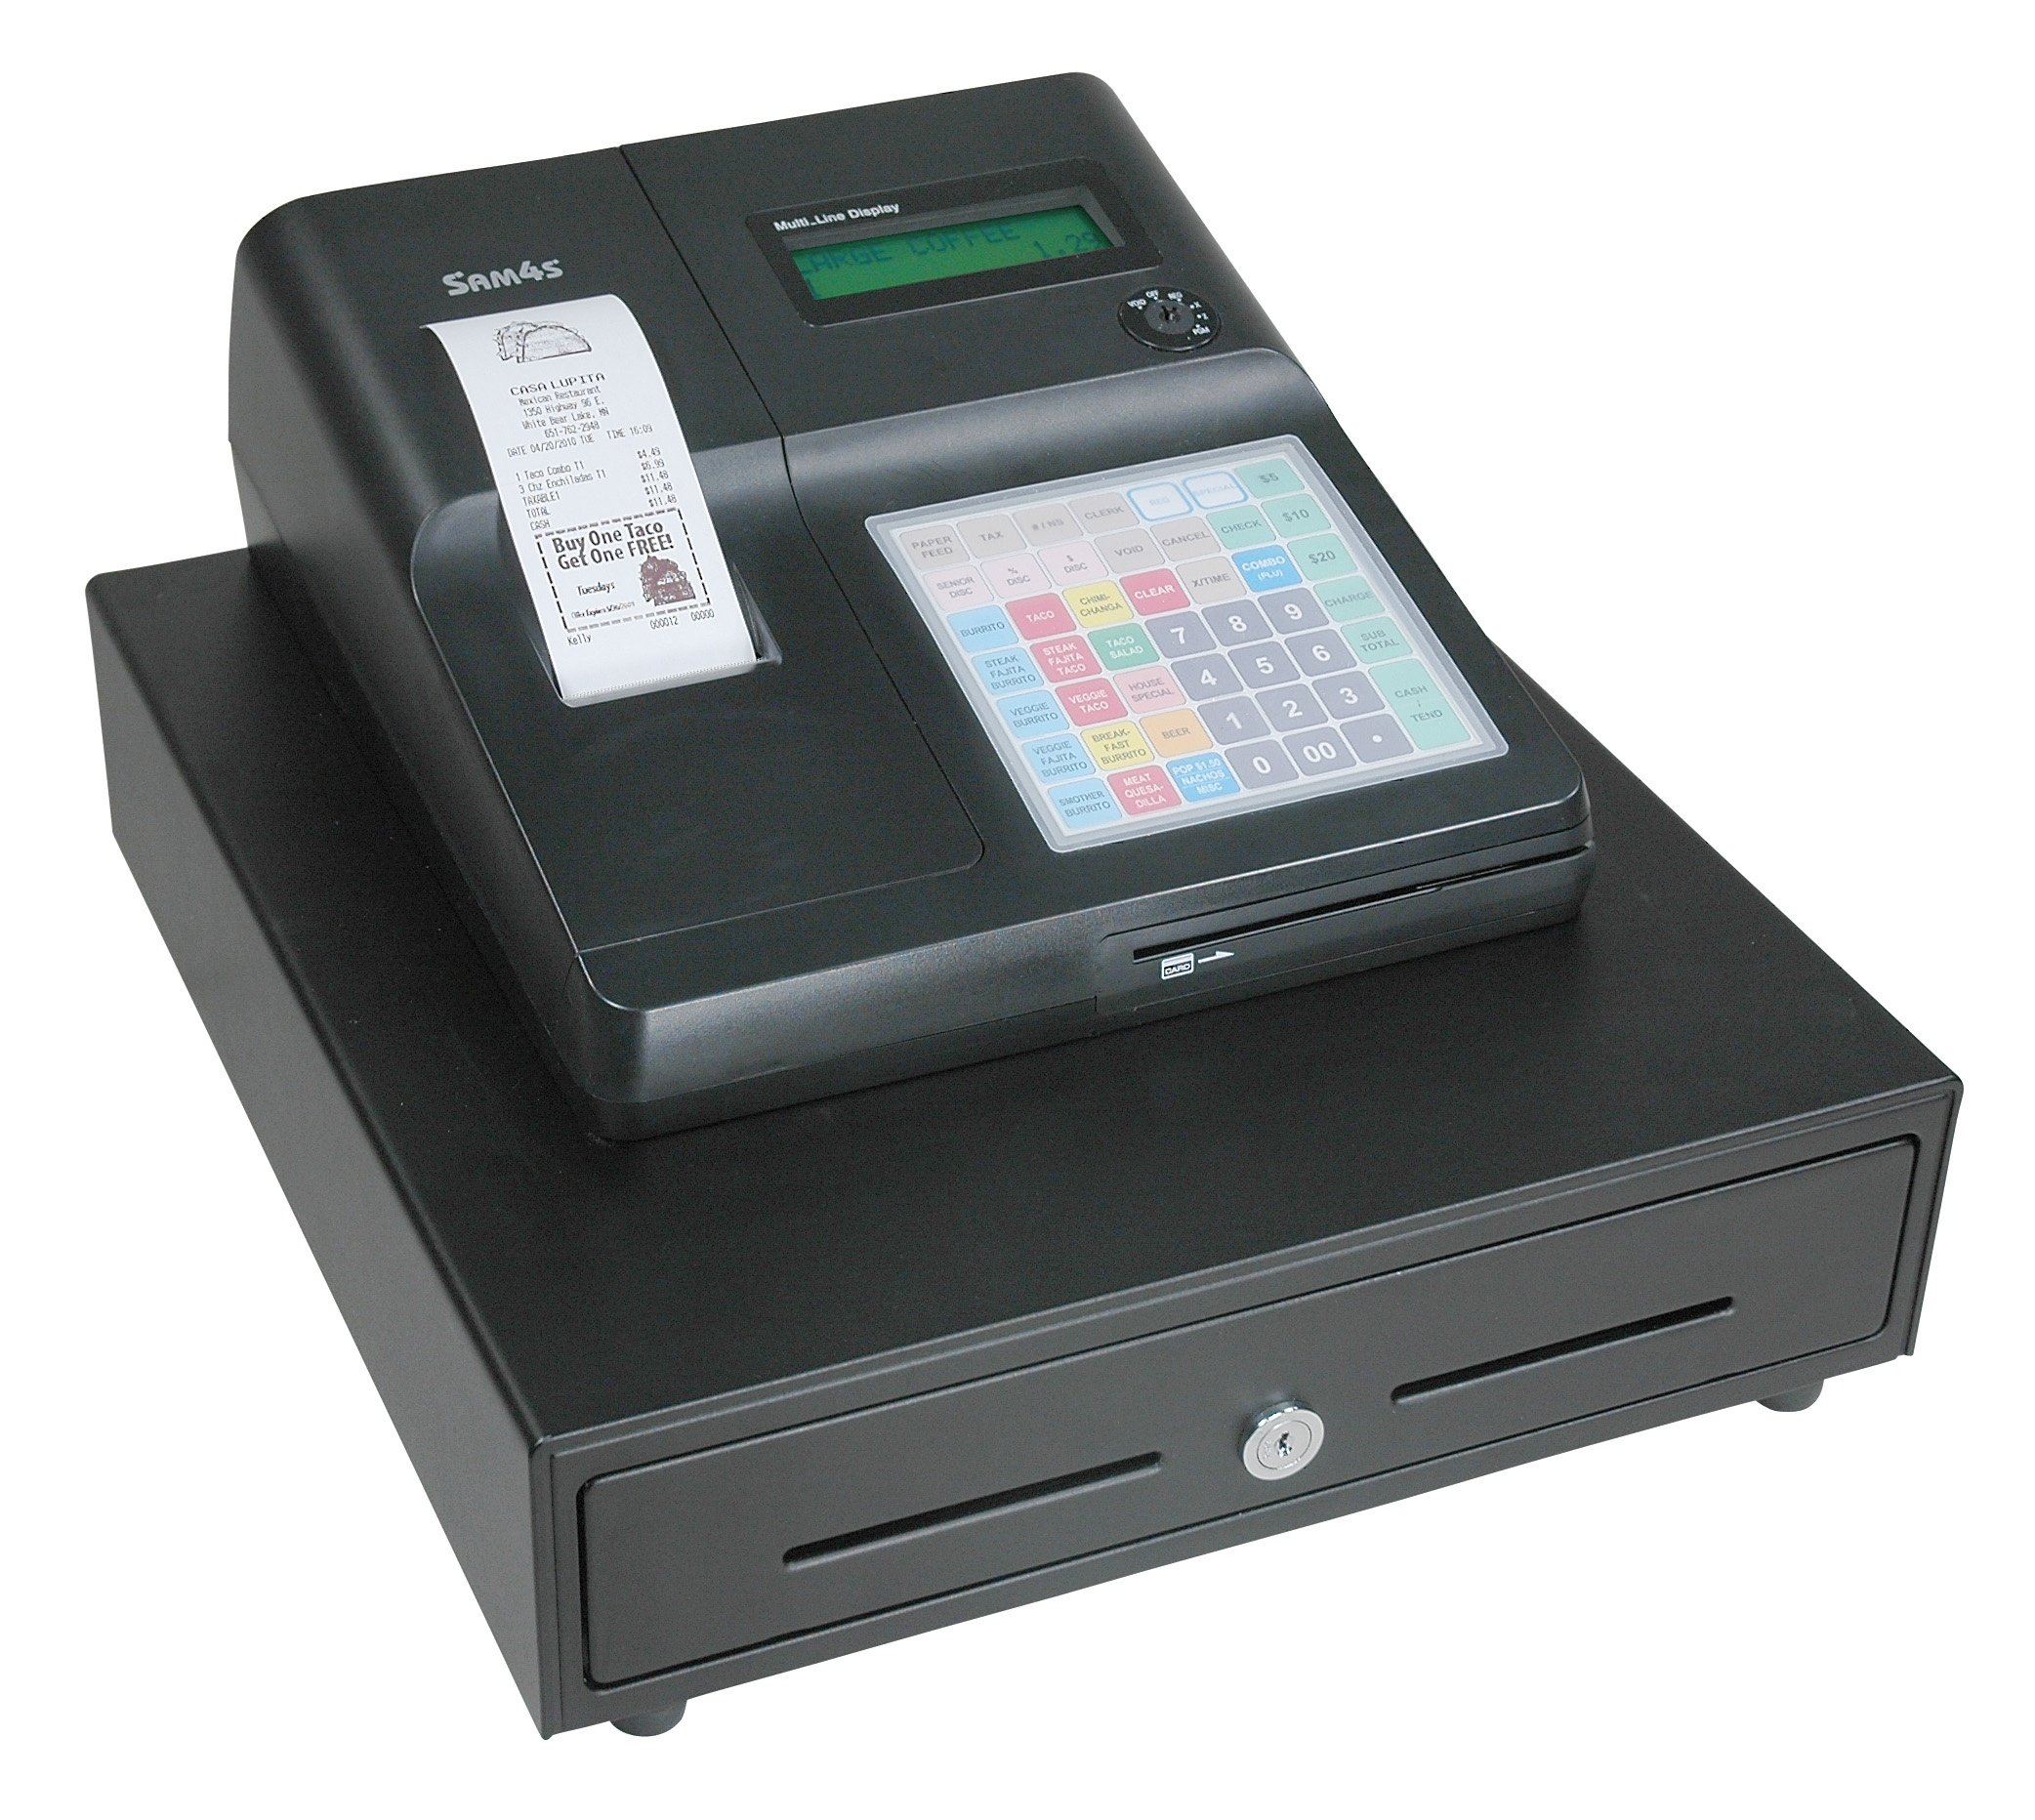 ALBERTA CASH REGISTER POS SYSTEMS INC